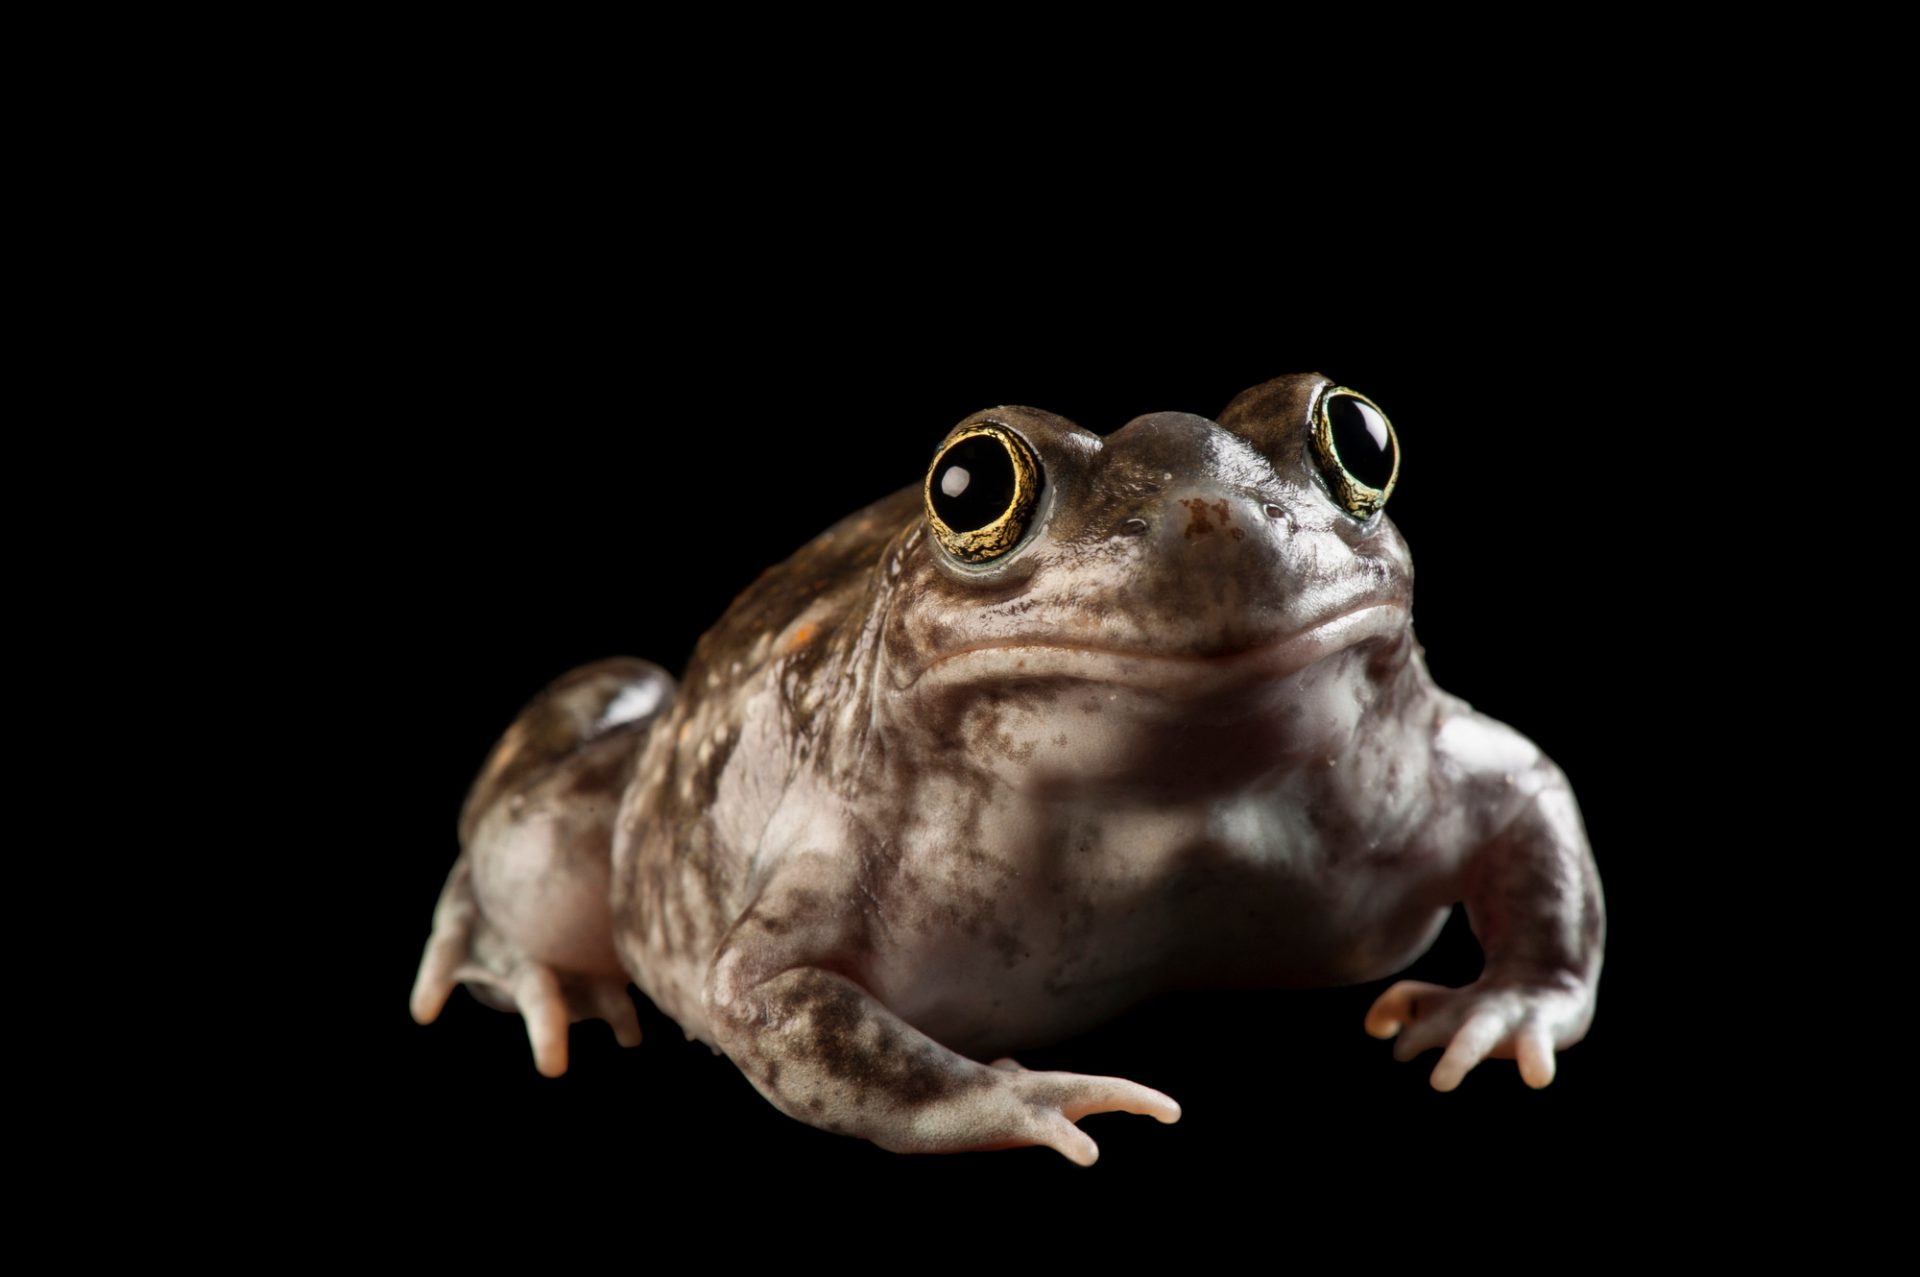 Photo: A plains spadefoot toad (Spea bombifrons) at UNL.